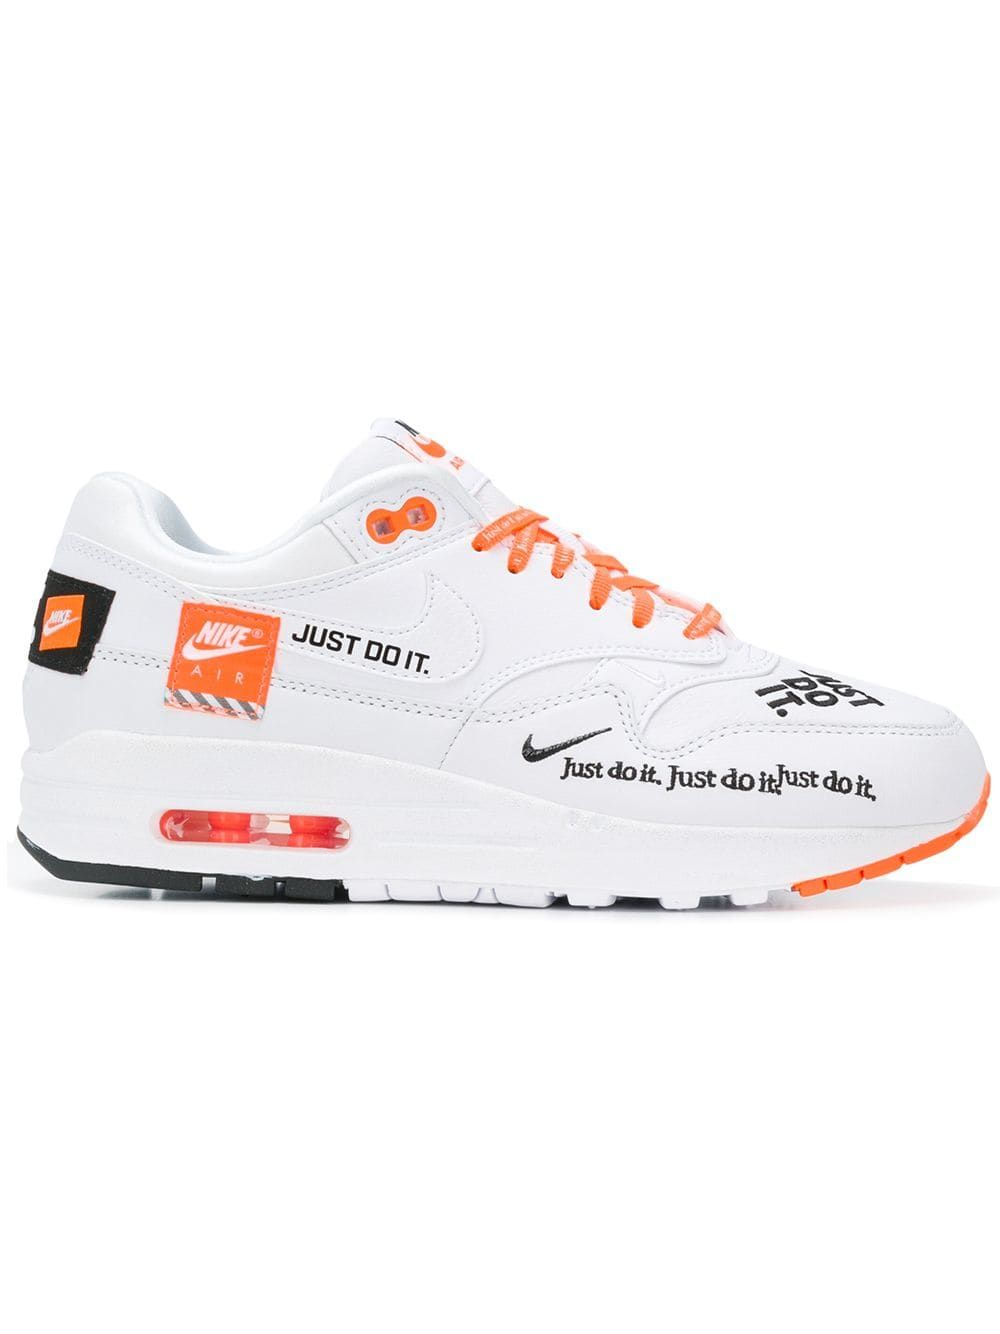 Nike Air Max 1 Lux Just Do It Pack Sneakers White Nike Air Max